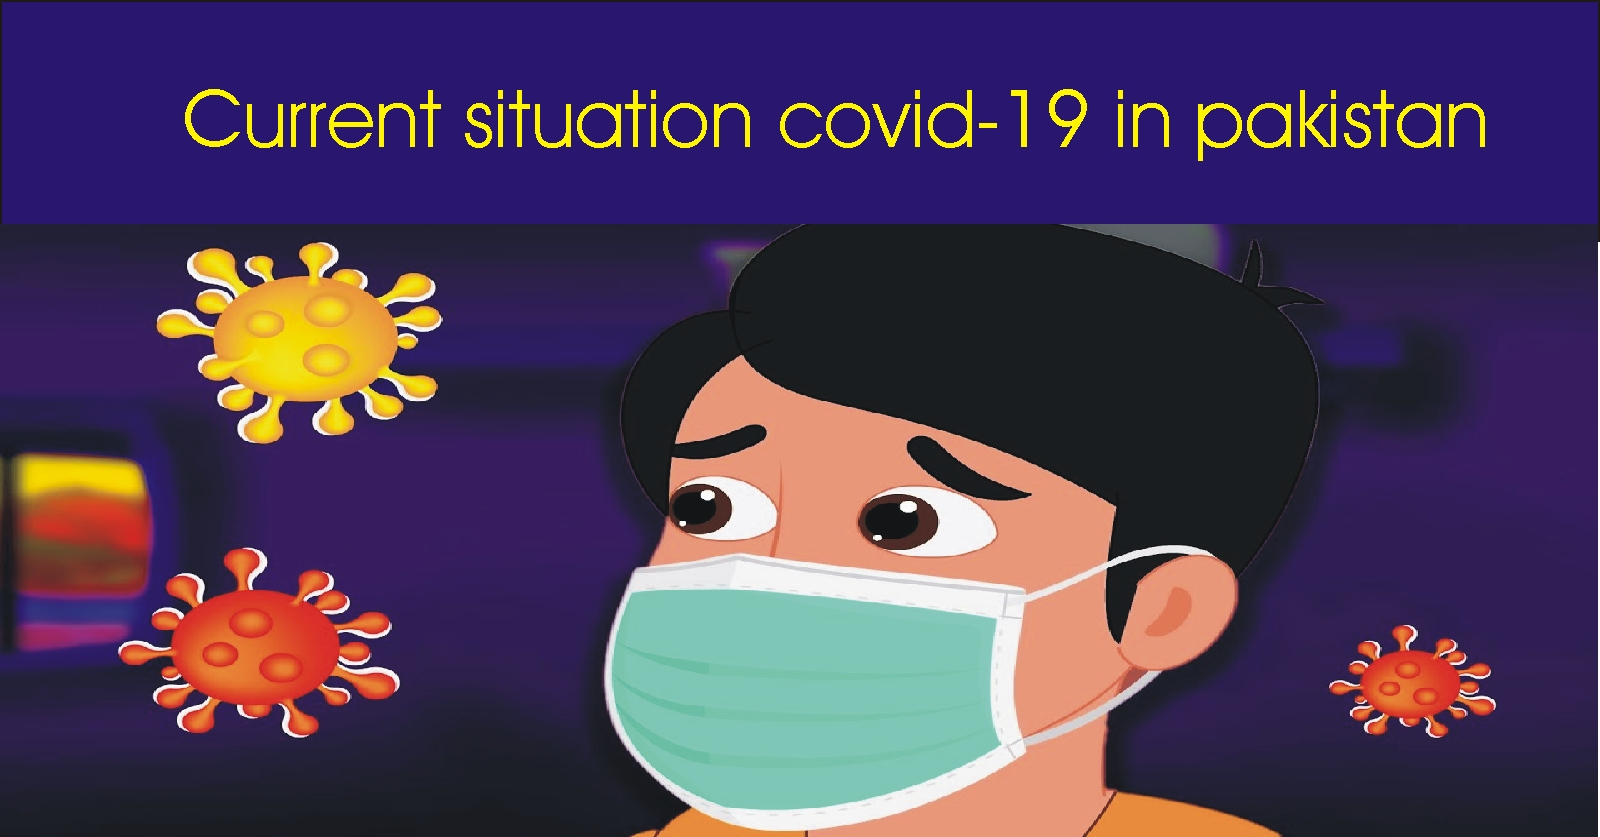 Current situation covid-19 in pakistan